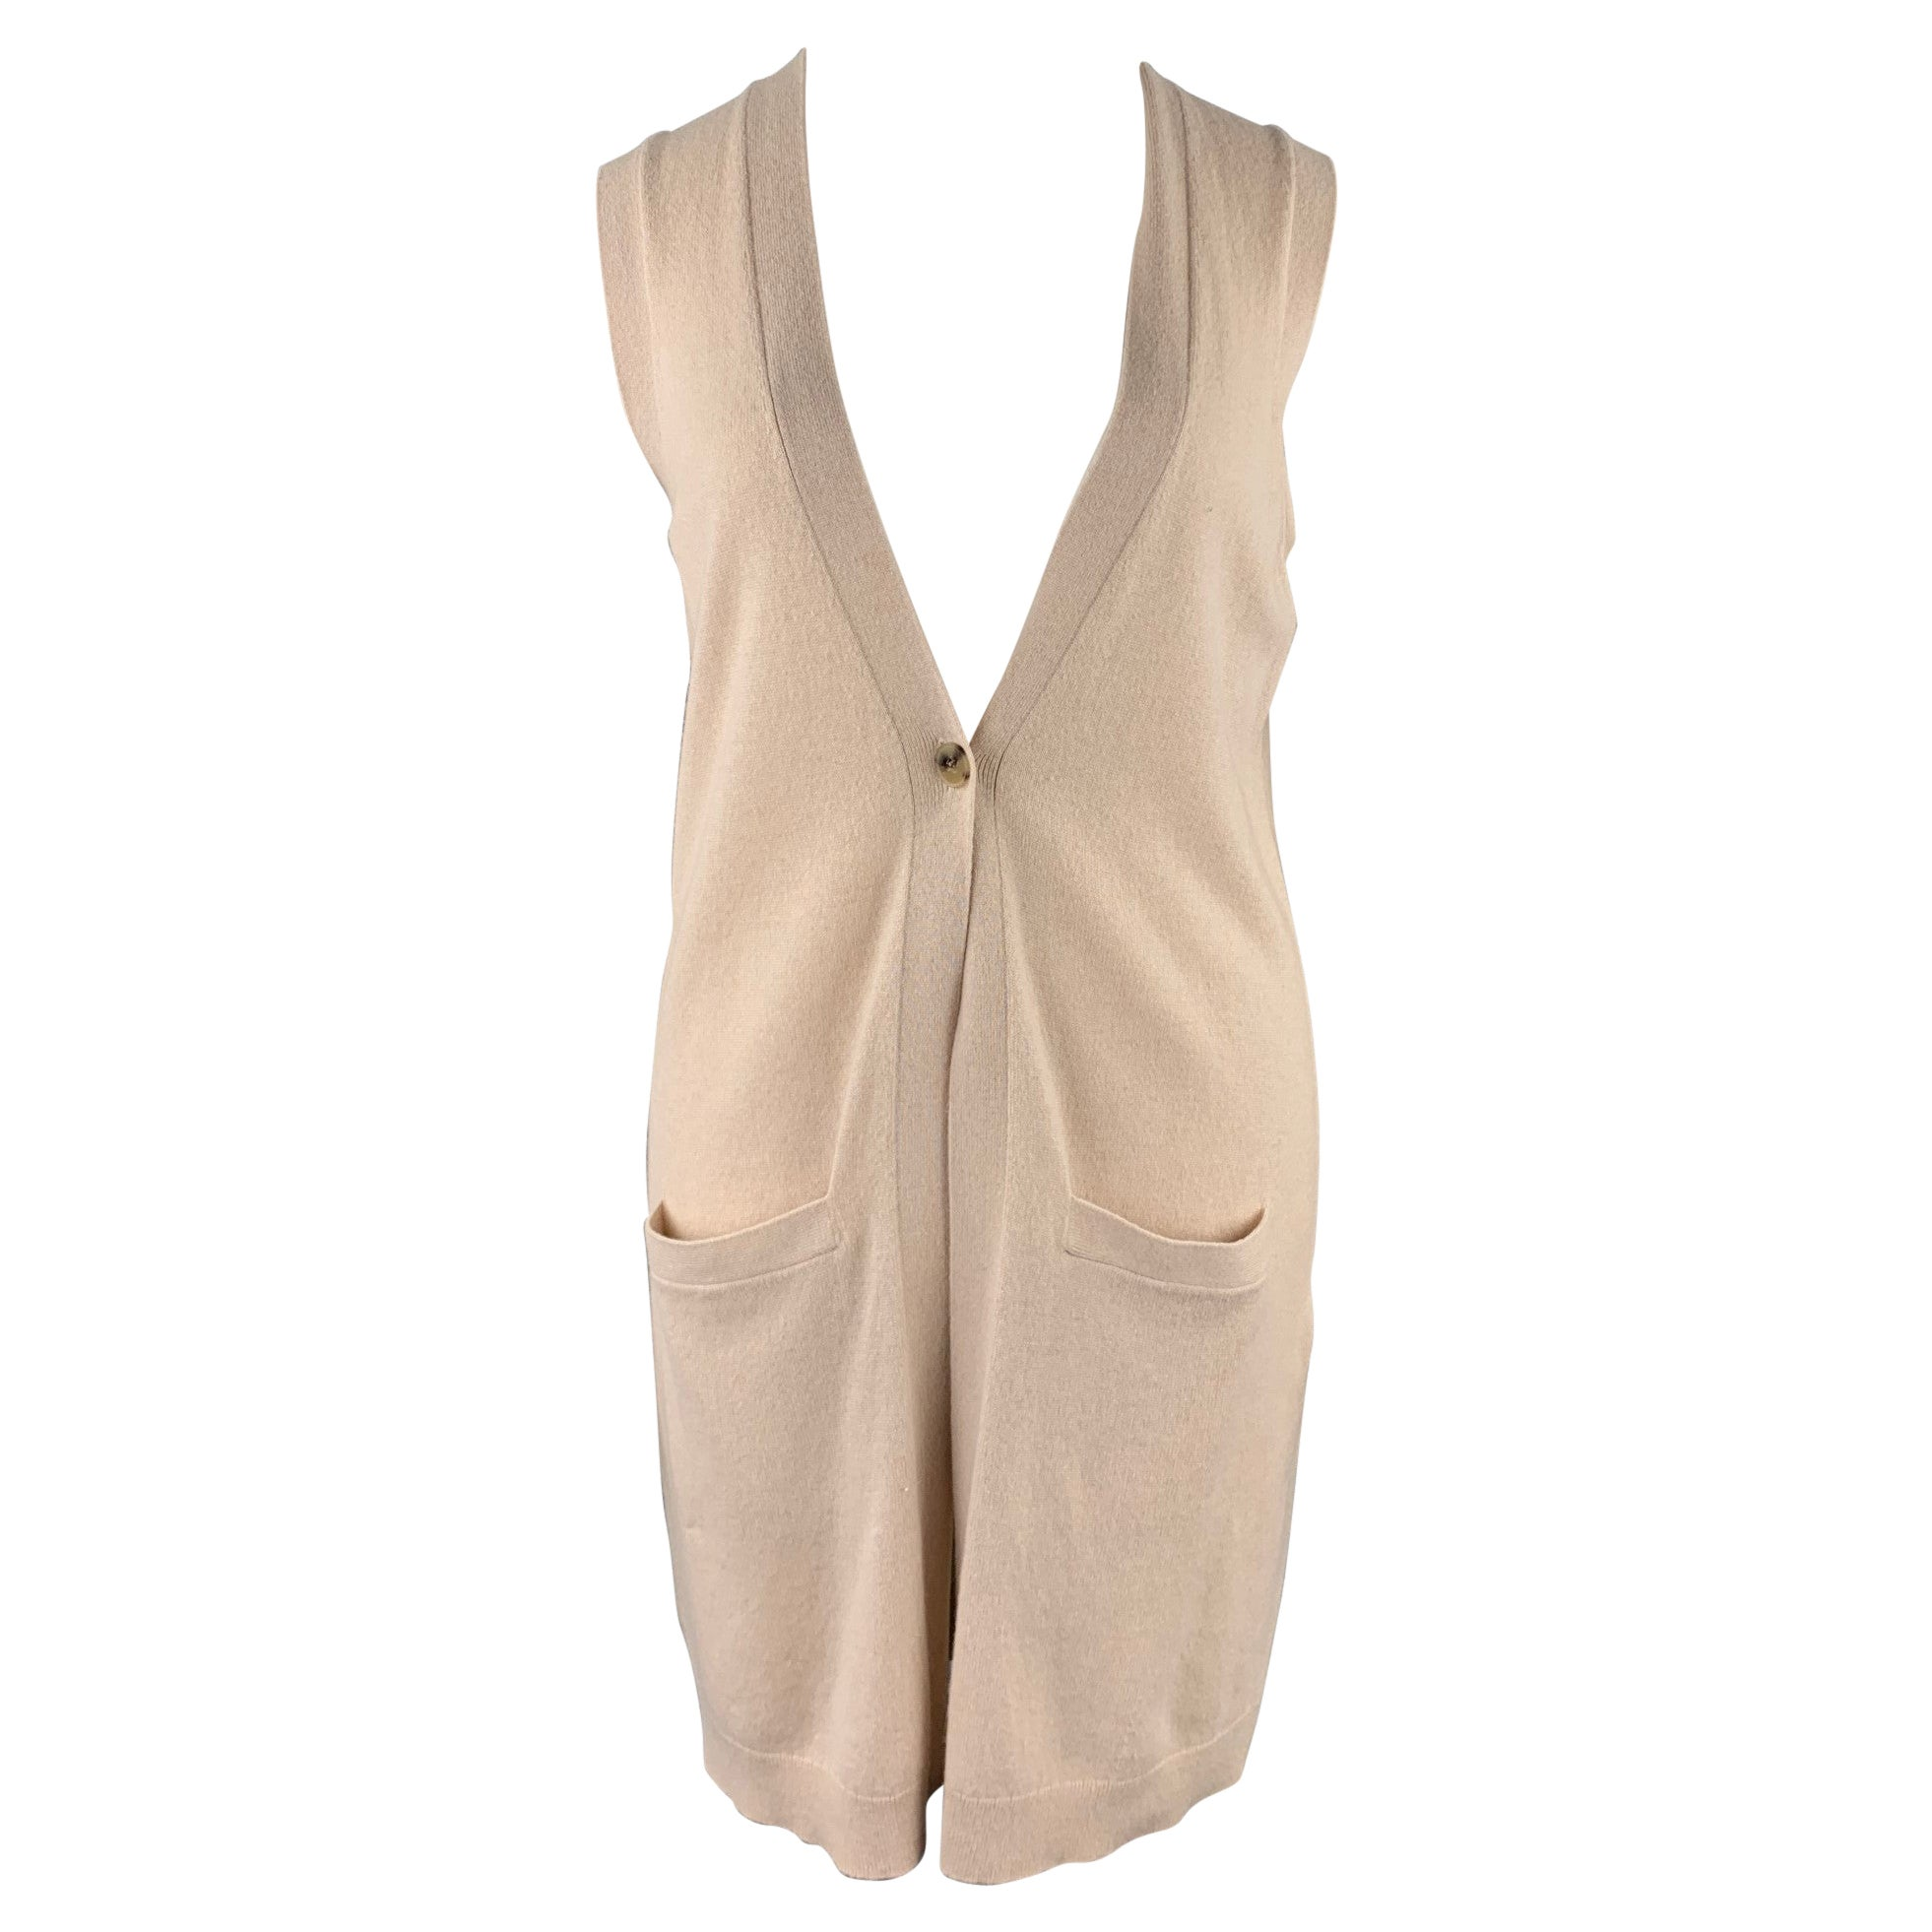 THEORY Size L Beige Knitted Cashmere Sleeveless Cardigan